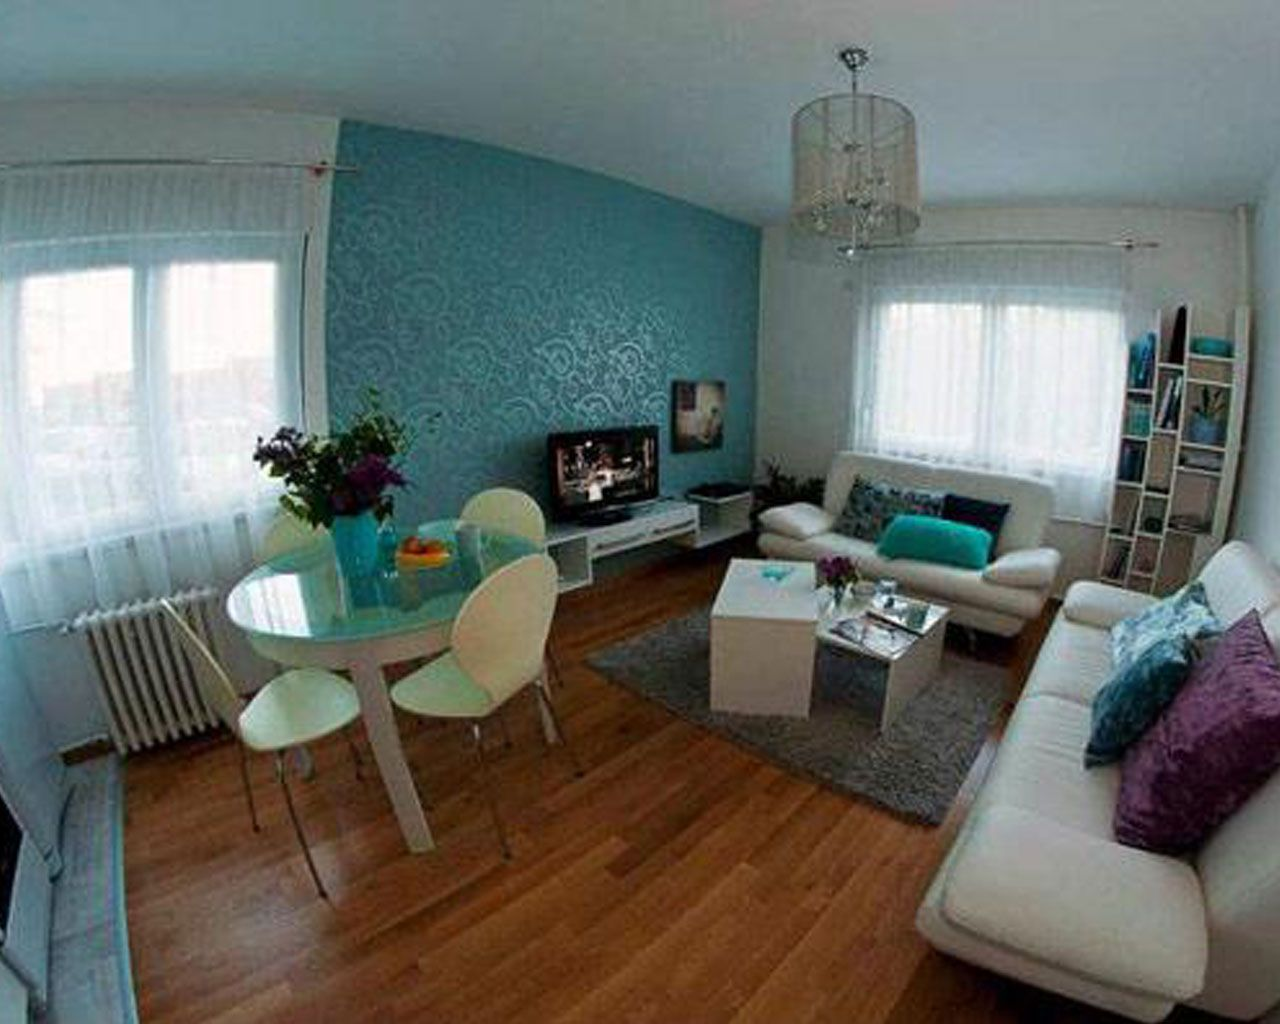 Colorful apartment living room design ideas - Picturesque Square Living Room Layout Design Ideas Beautiful Cyan White Square Living Room Layout With White Sectional Sofa And Impressive Pendant Lamp